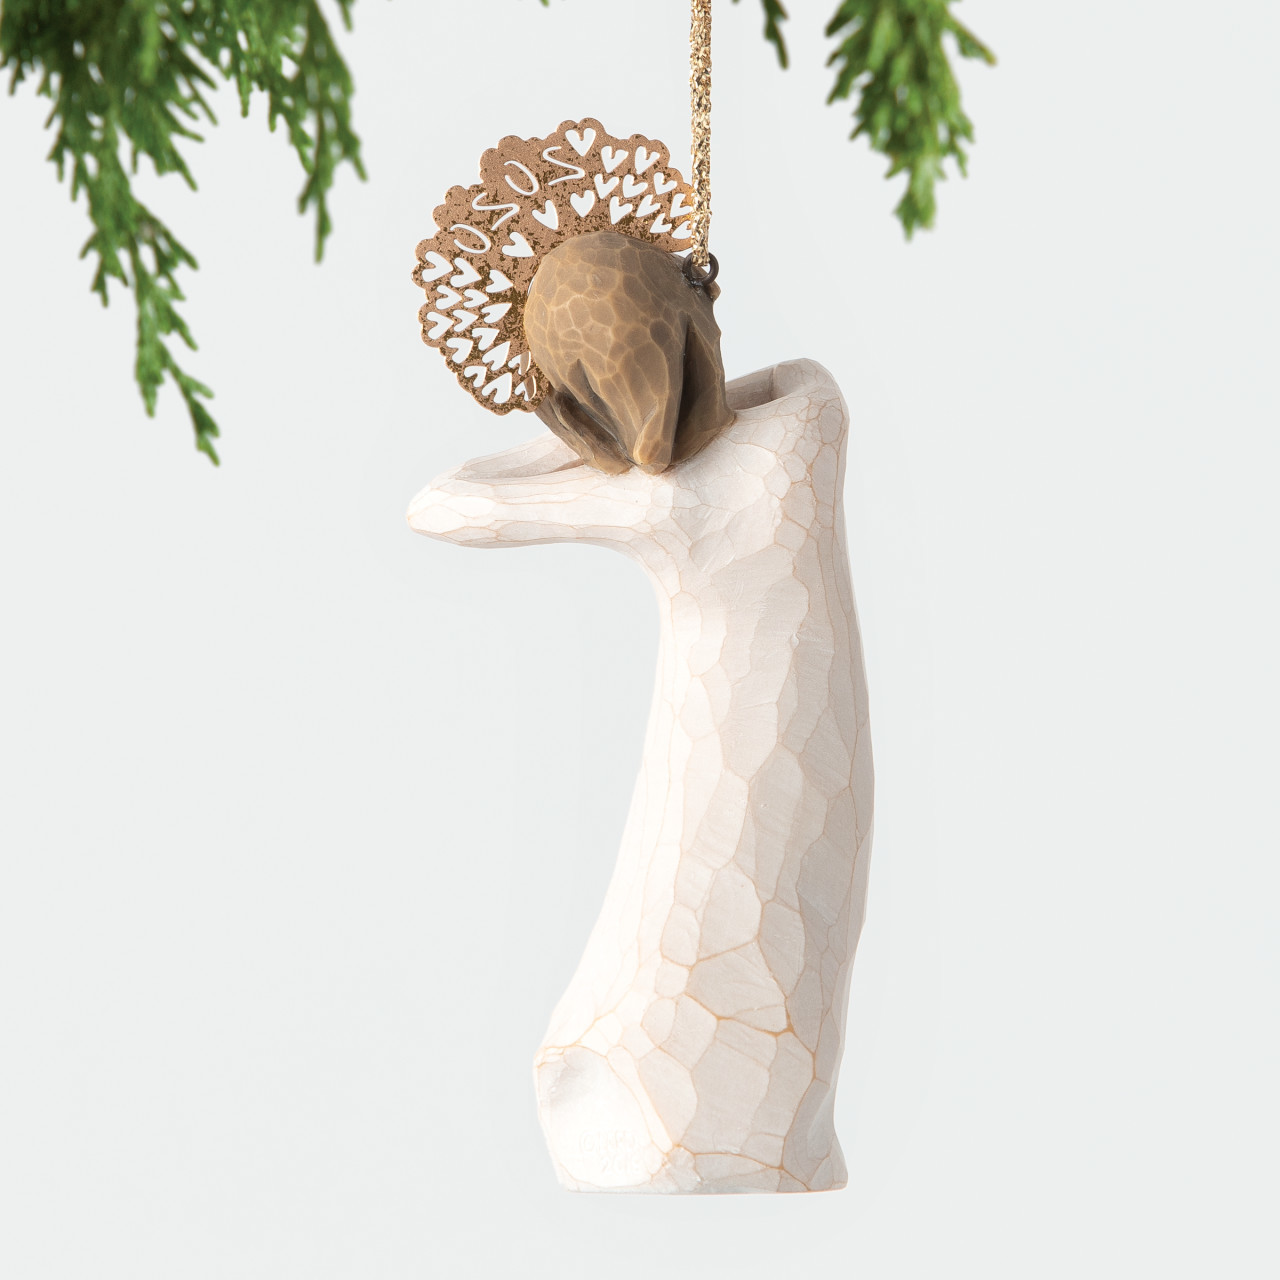 Willow Tree Christmas 2020 Ornament Willow Tree 2020 Dated Ornament by Susan Lordi at Hooked on Ornaments